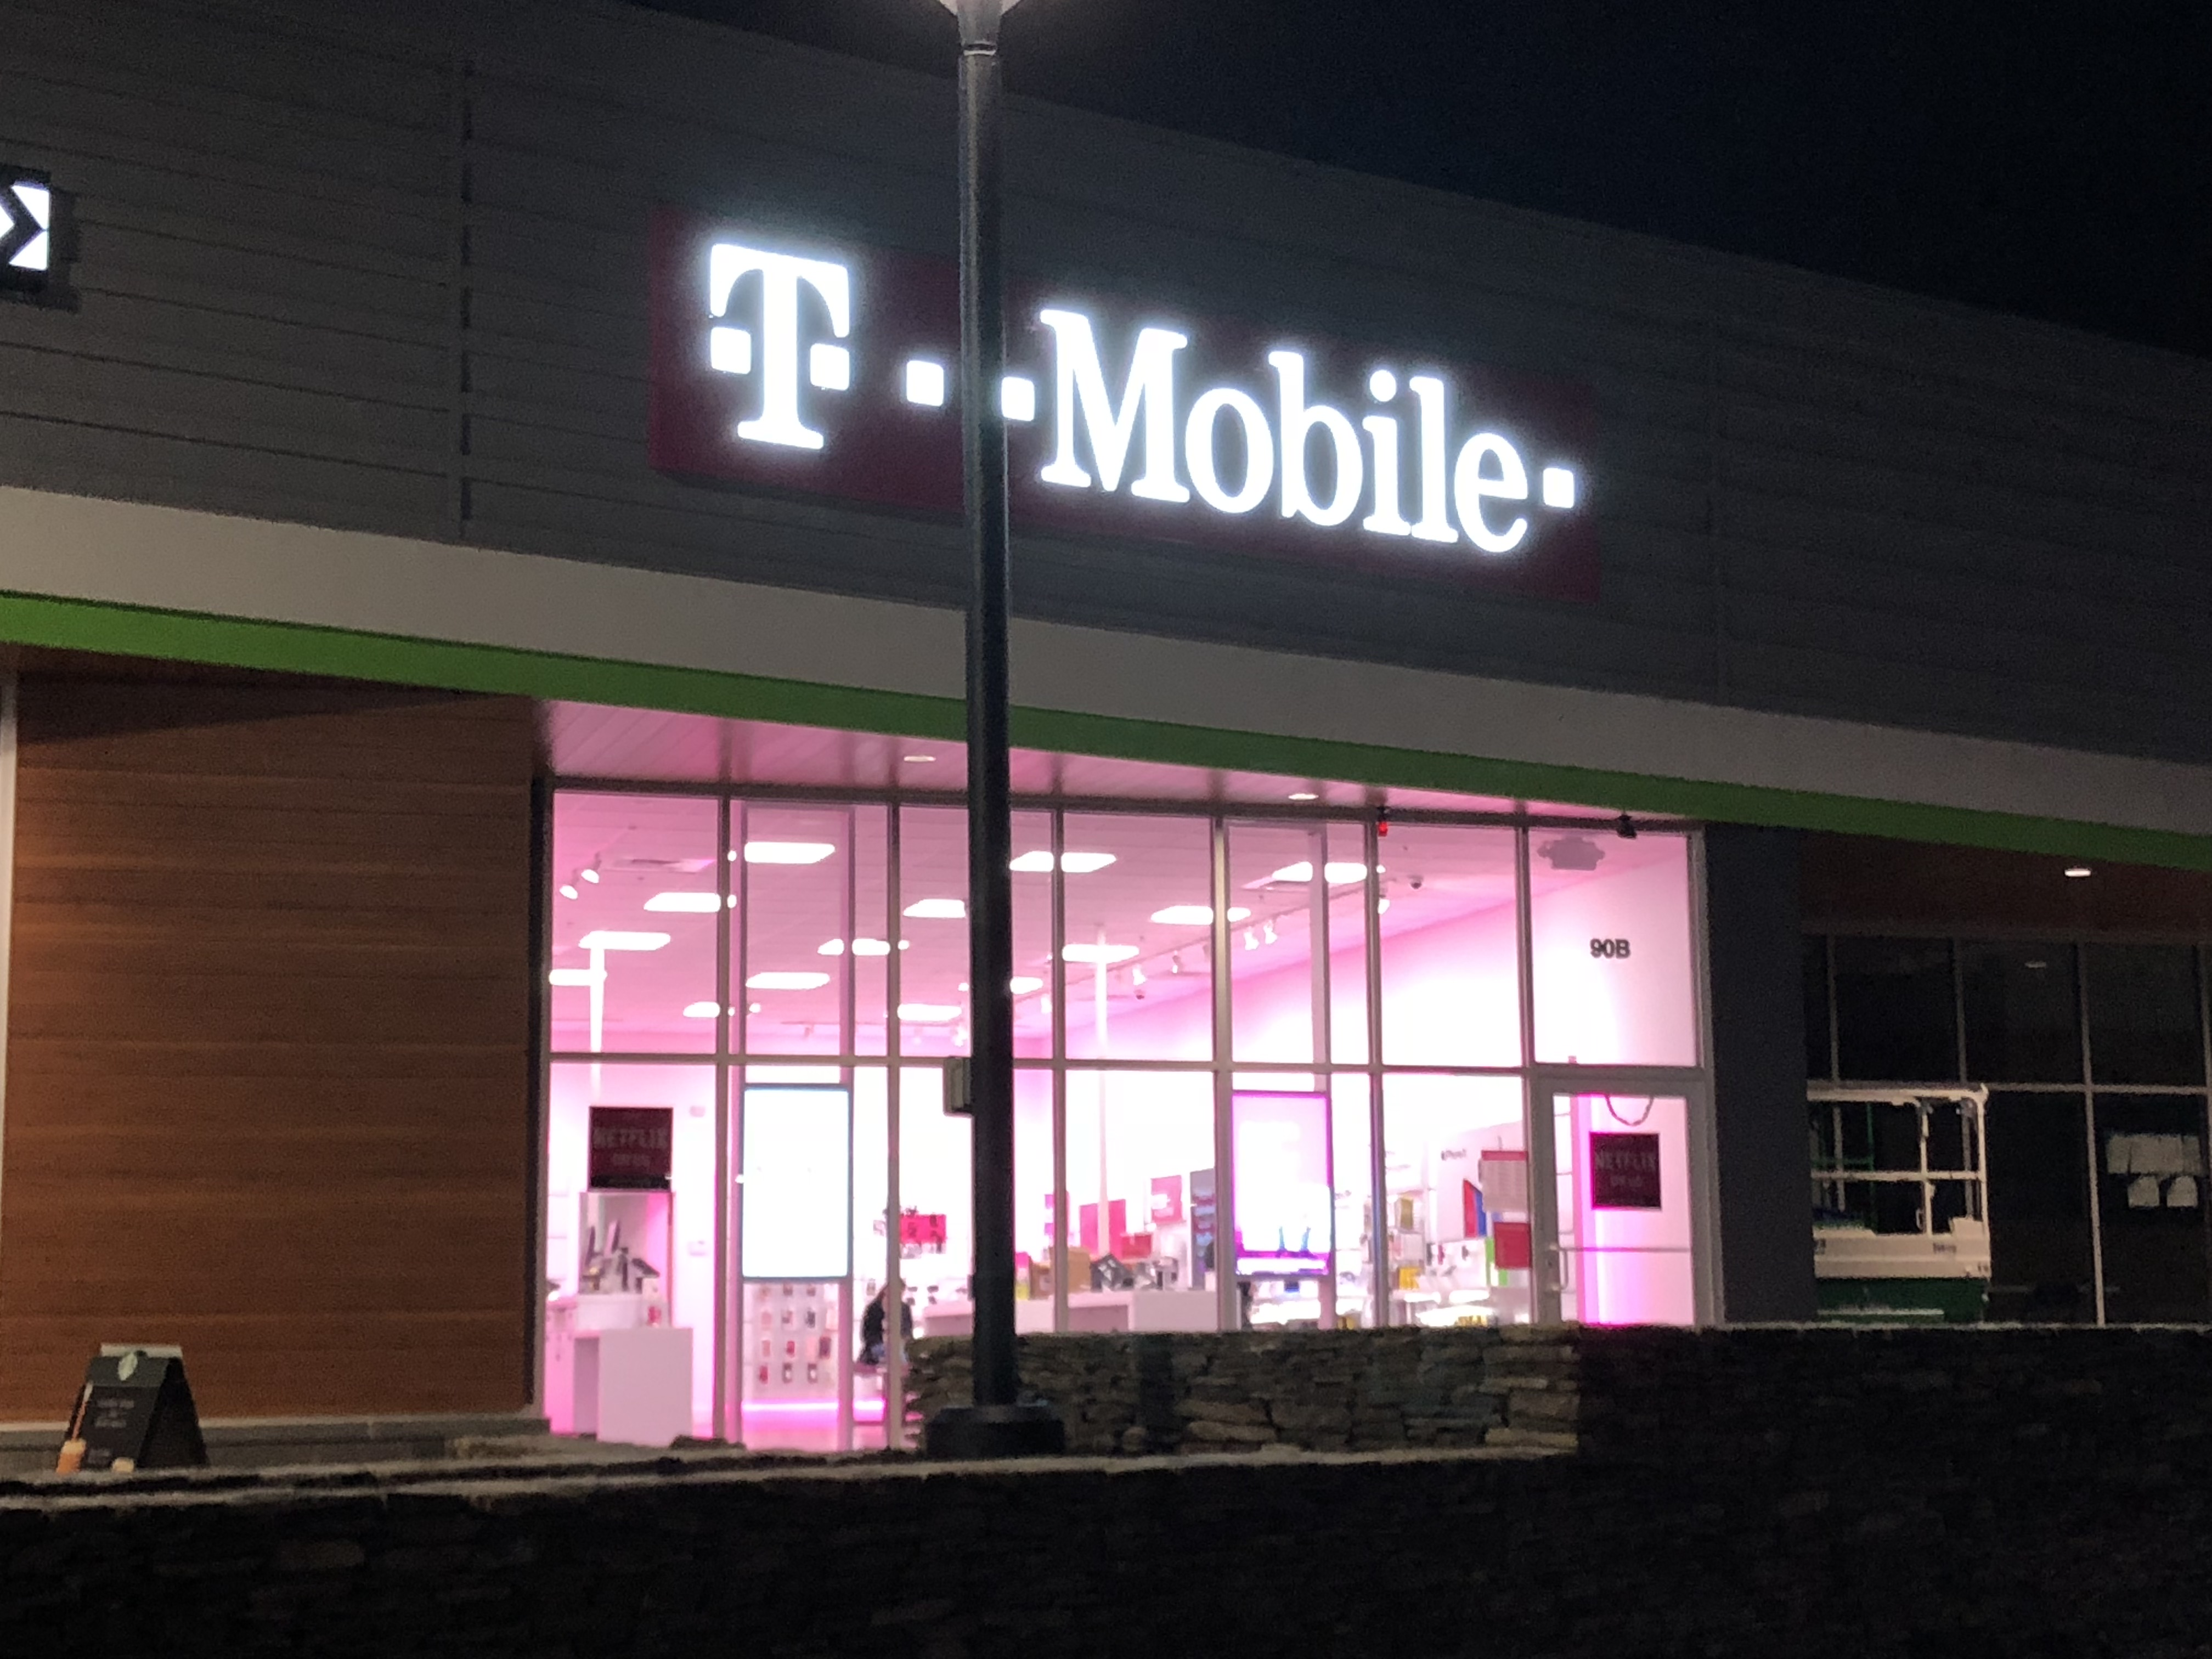 Marlborough MA T-Mobile, Apex Center